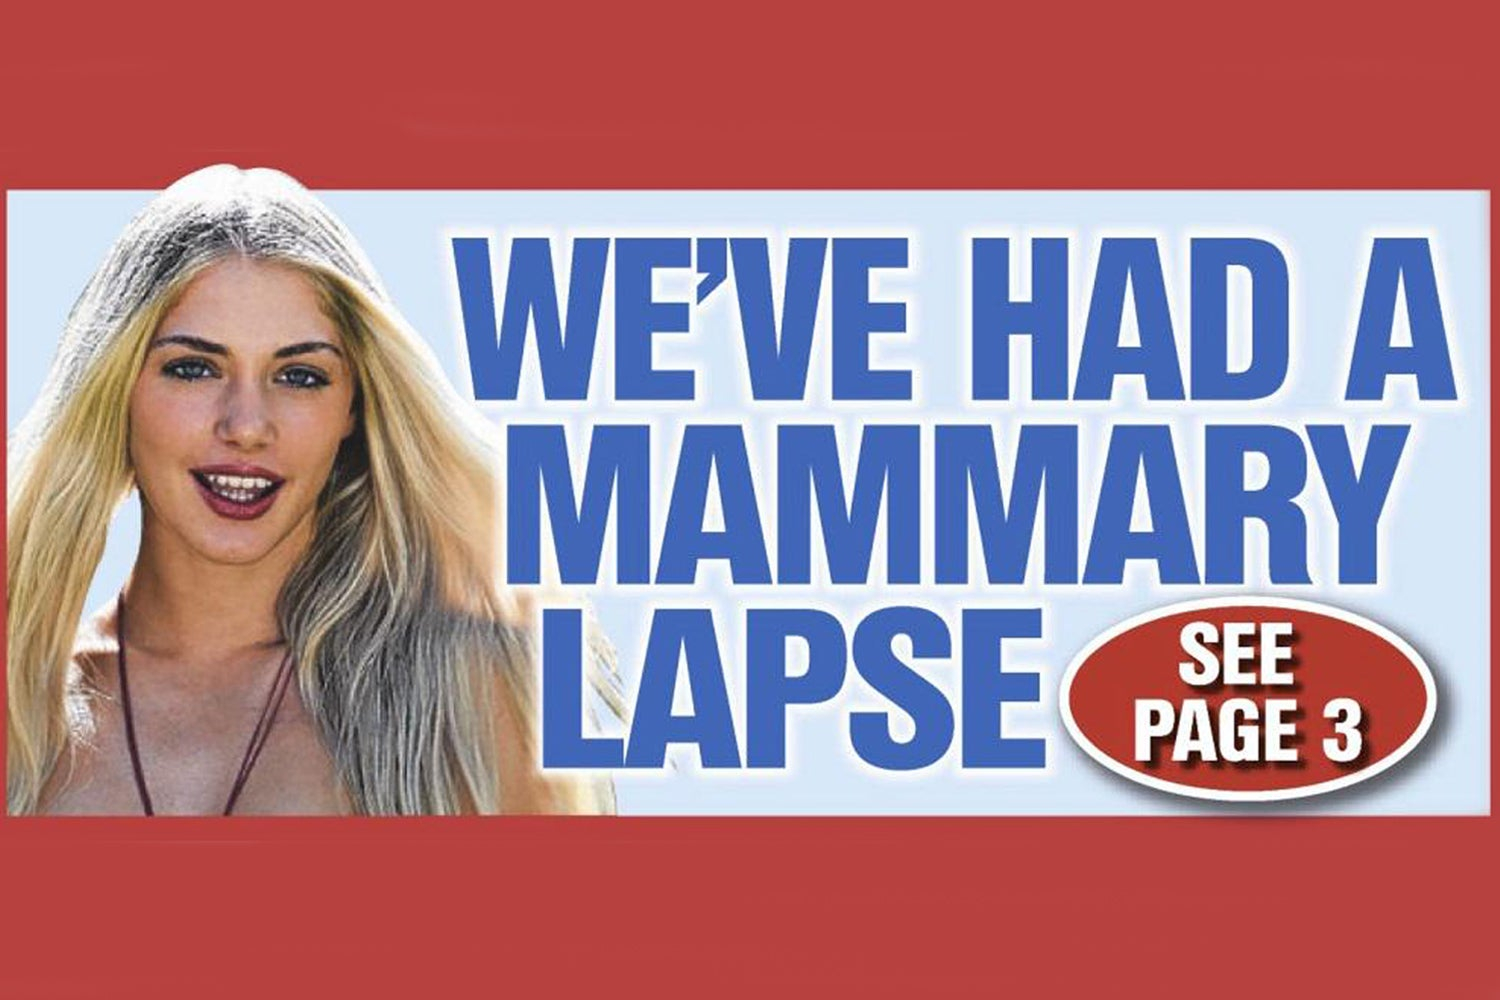 Gloves Are Off, Say Page 3 Campaigners, As Topless Models Make Comeback In The Sun | Uk | News pertaining to The Sun Girls Page 3